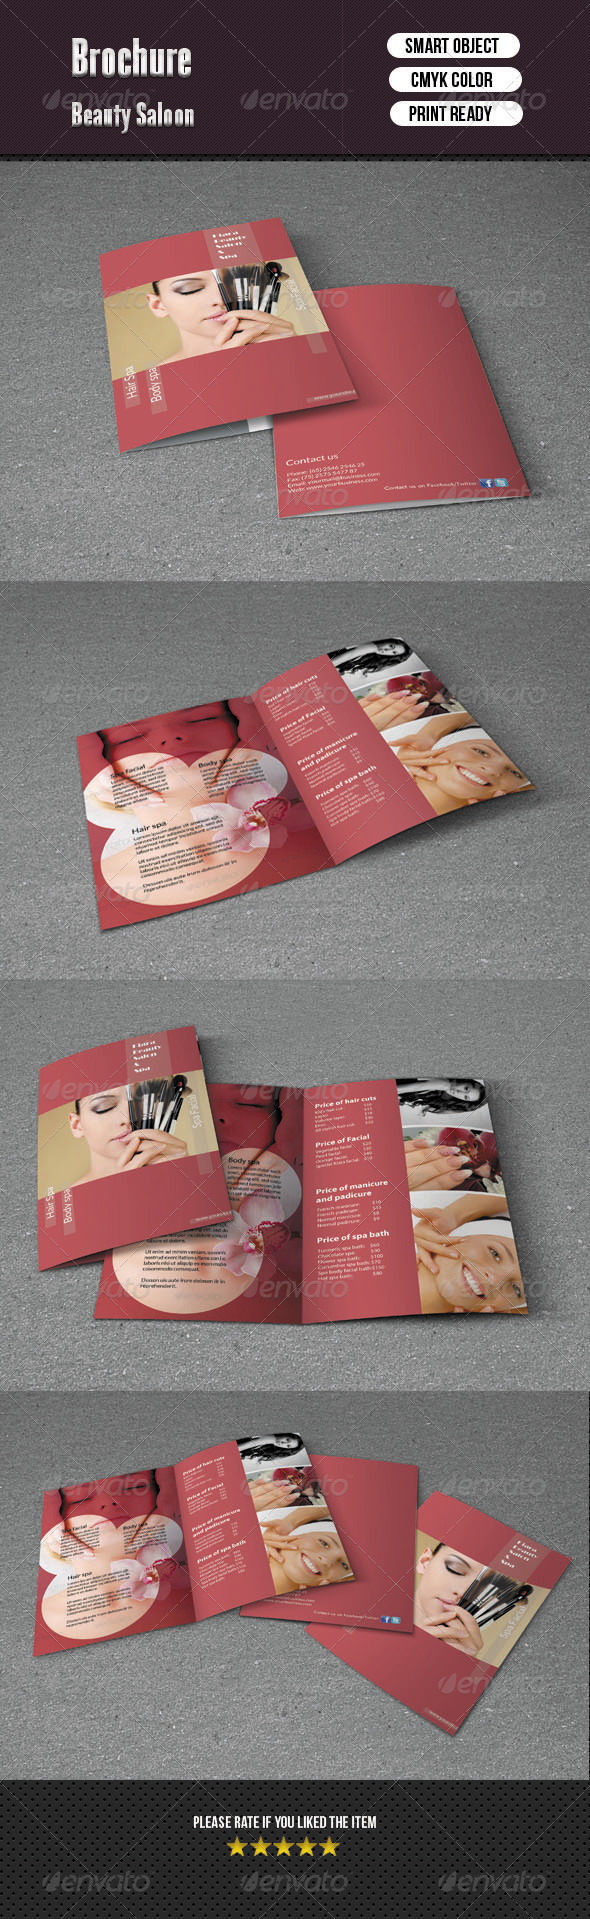 Bifold Brochure- Beauty Salon - Corporate Brochures